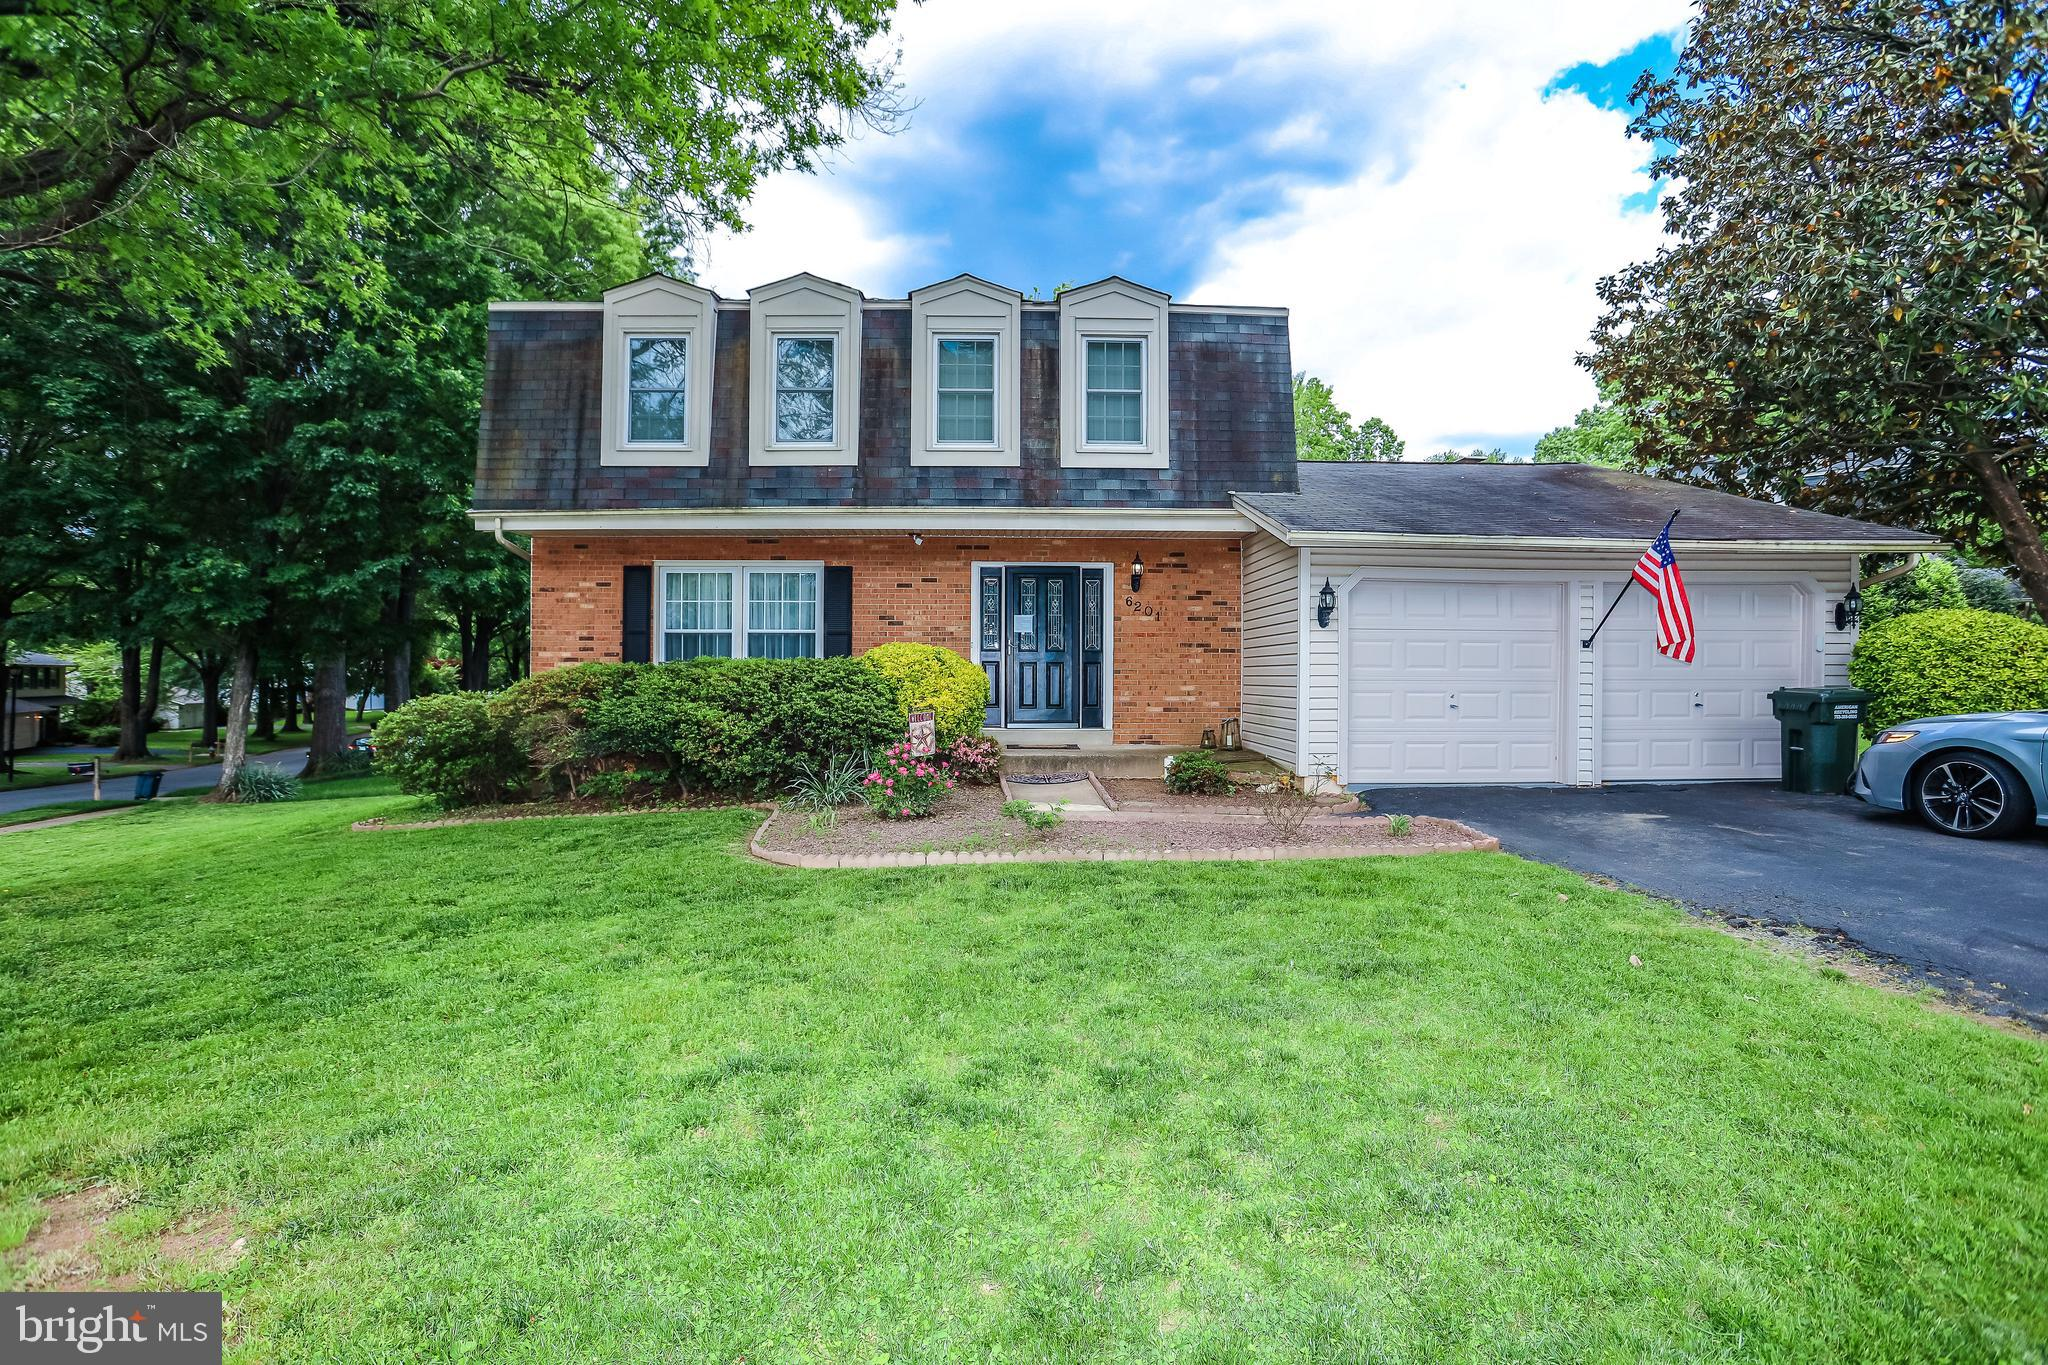 Well kept colonial in the heart of Burke Centre for the short sale price! Home needs minimal work and is priced accordingly. Updated kitchen, gleaming hardwoods on the main level, and a cozy deck out back make this home really stand out.